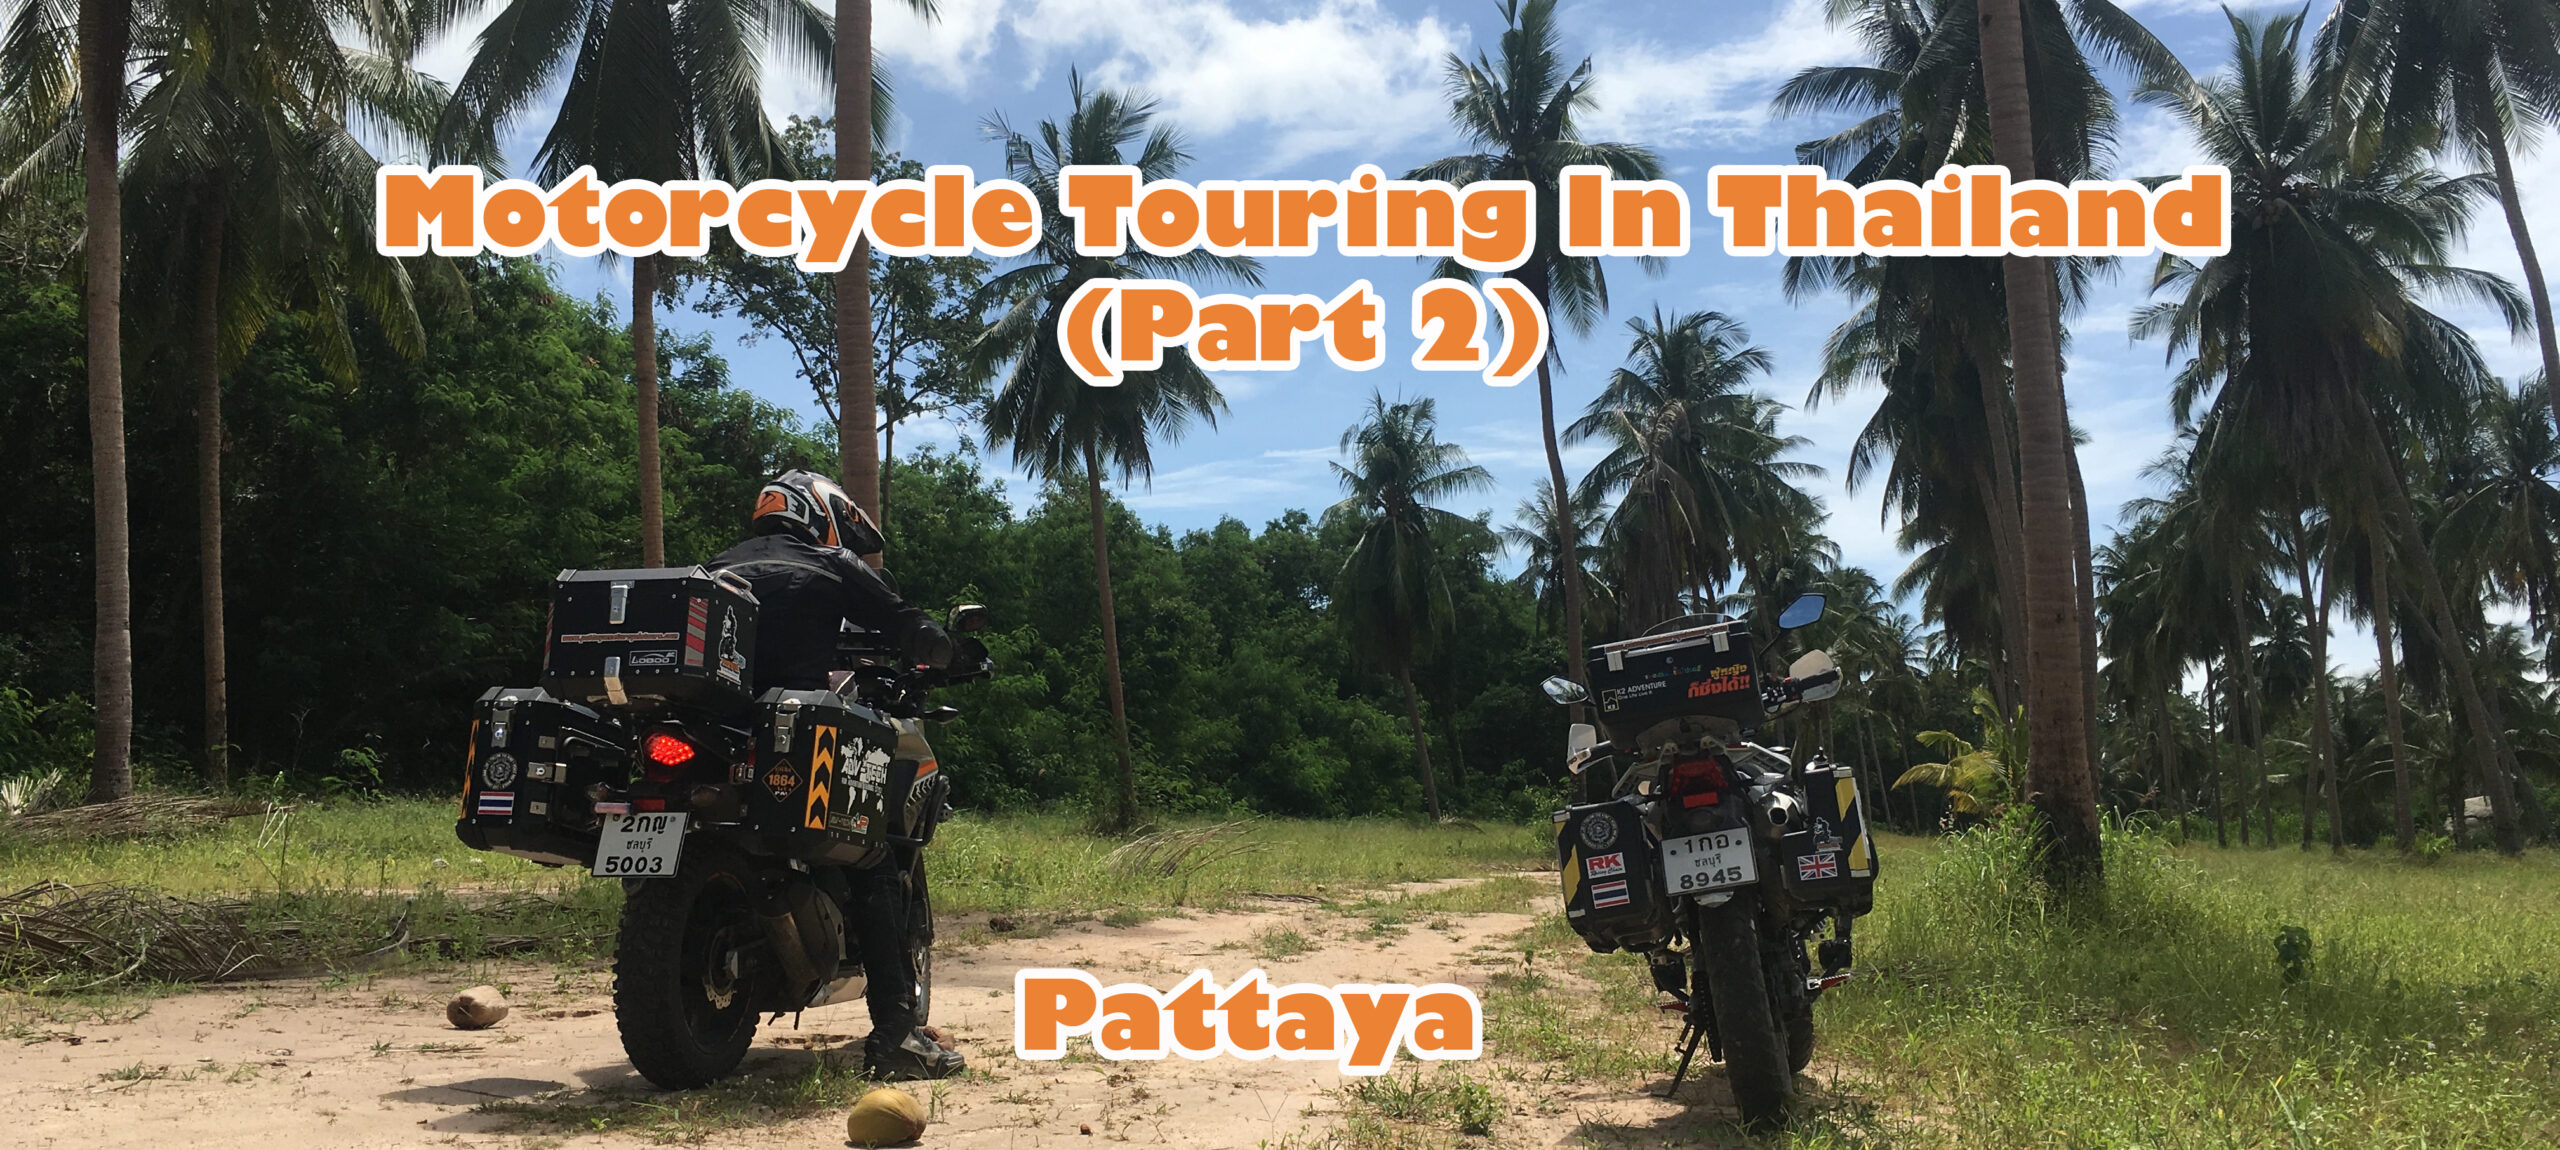 Motorcycle Touring Thailand